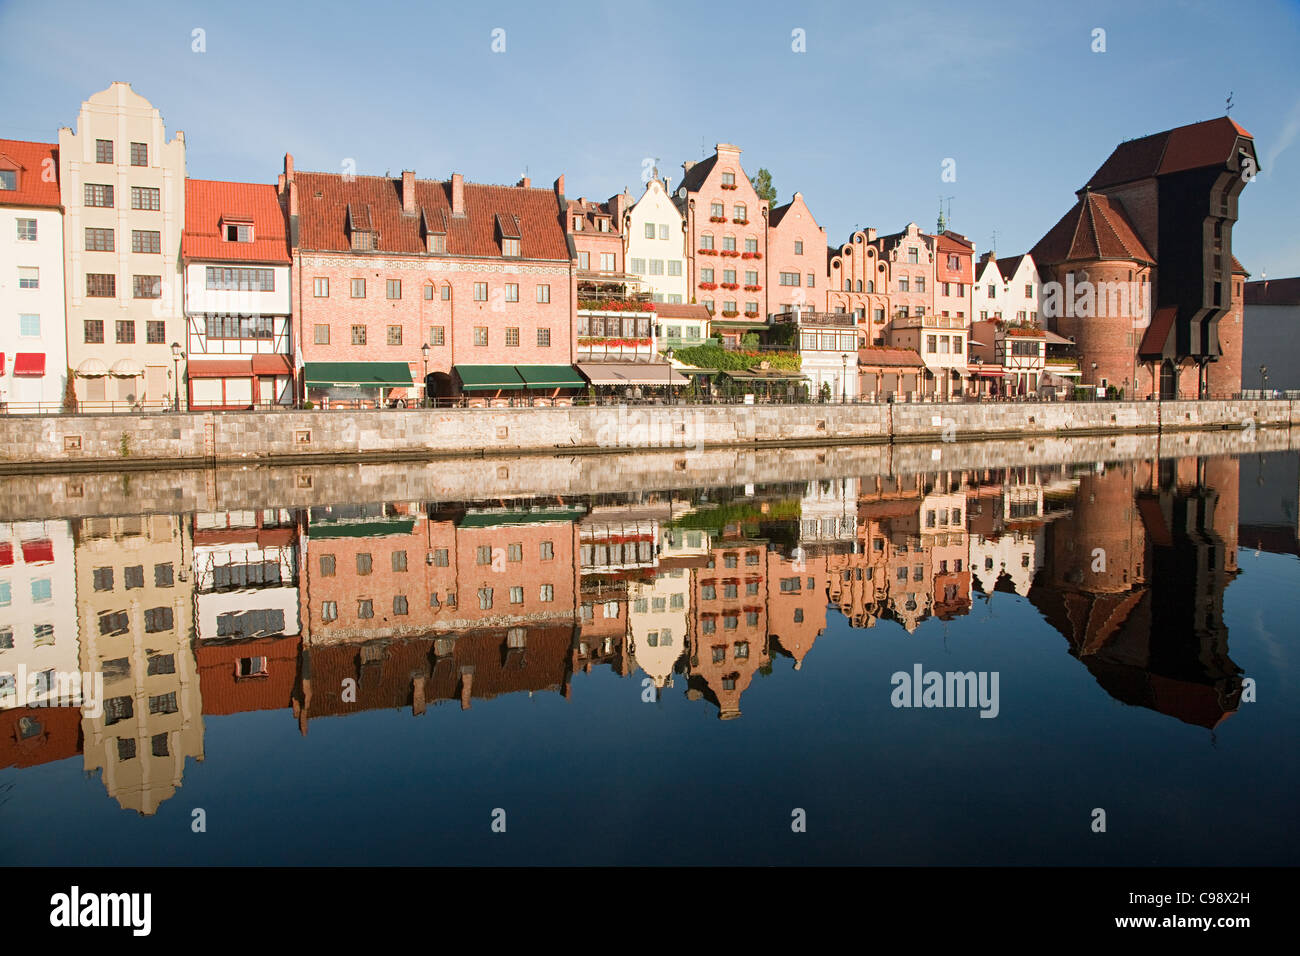 Buildings reflected in water, Gdansk, Poland - Stock Image